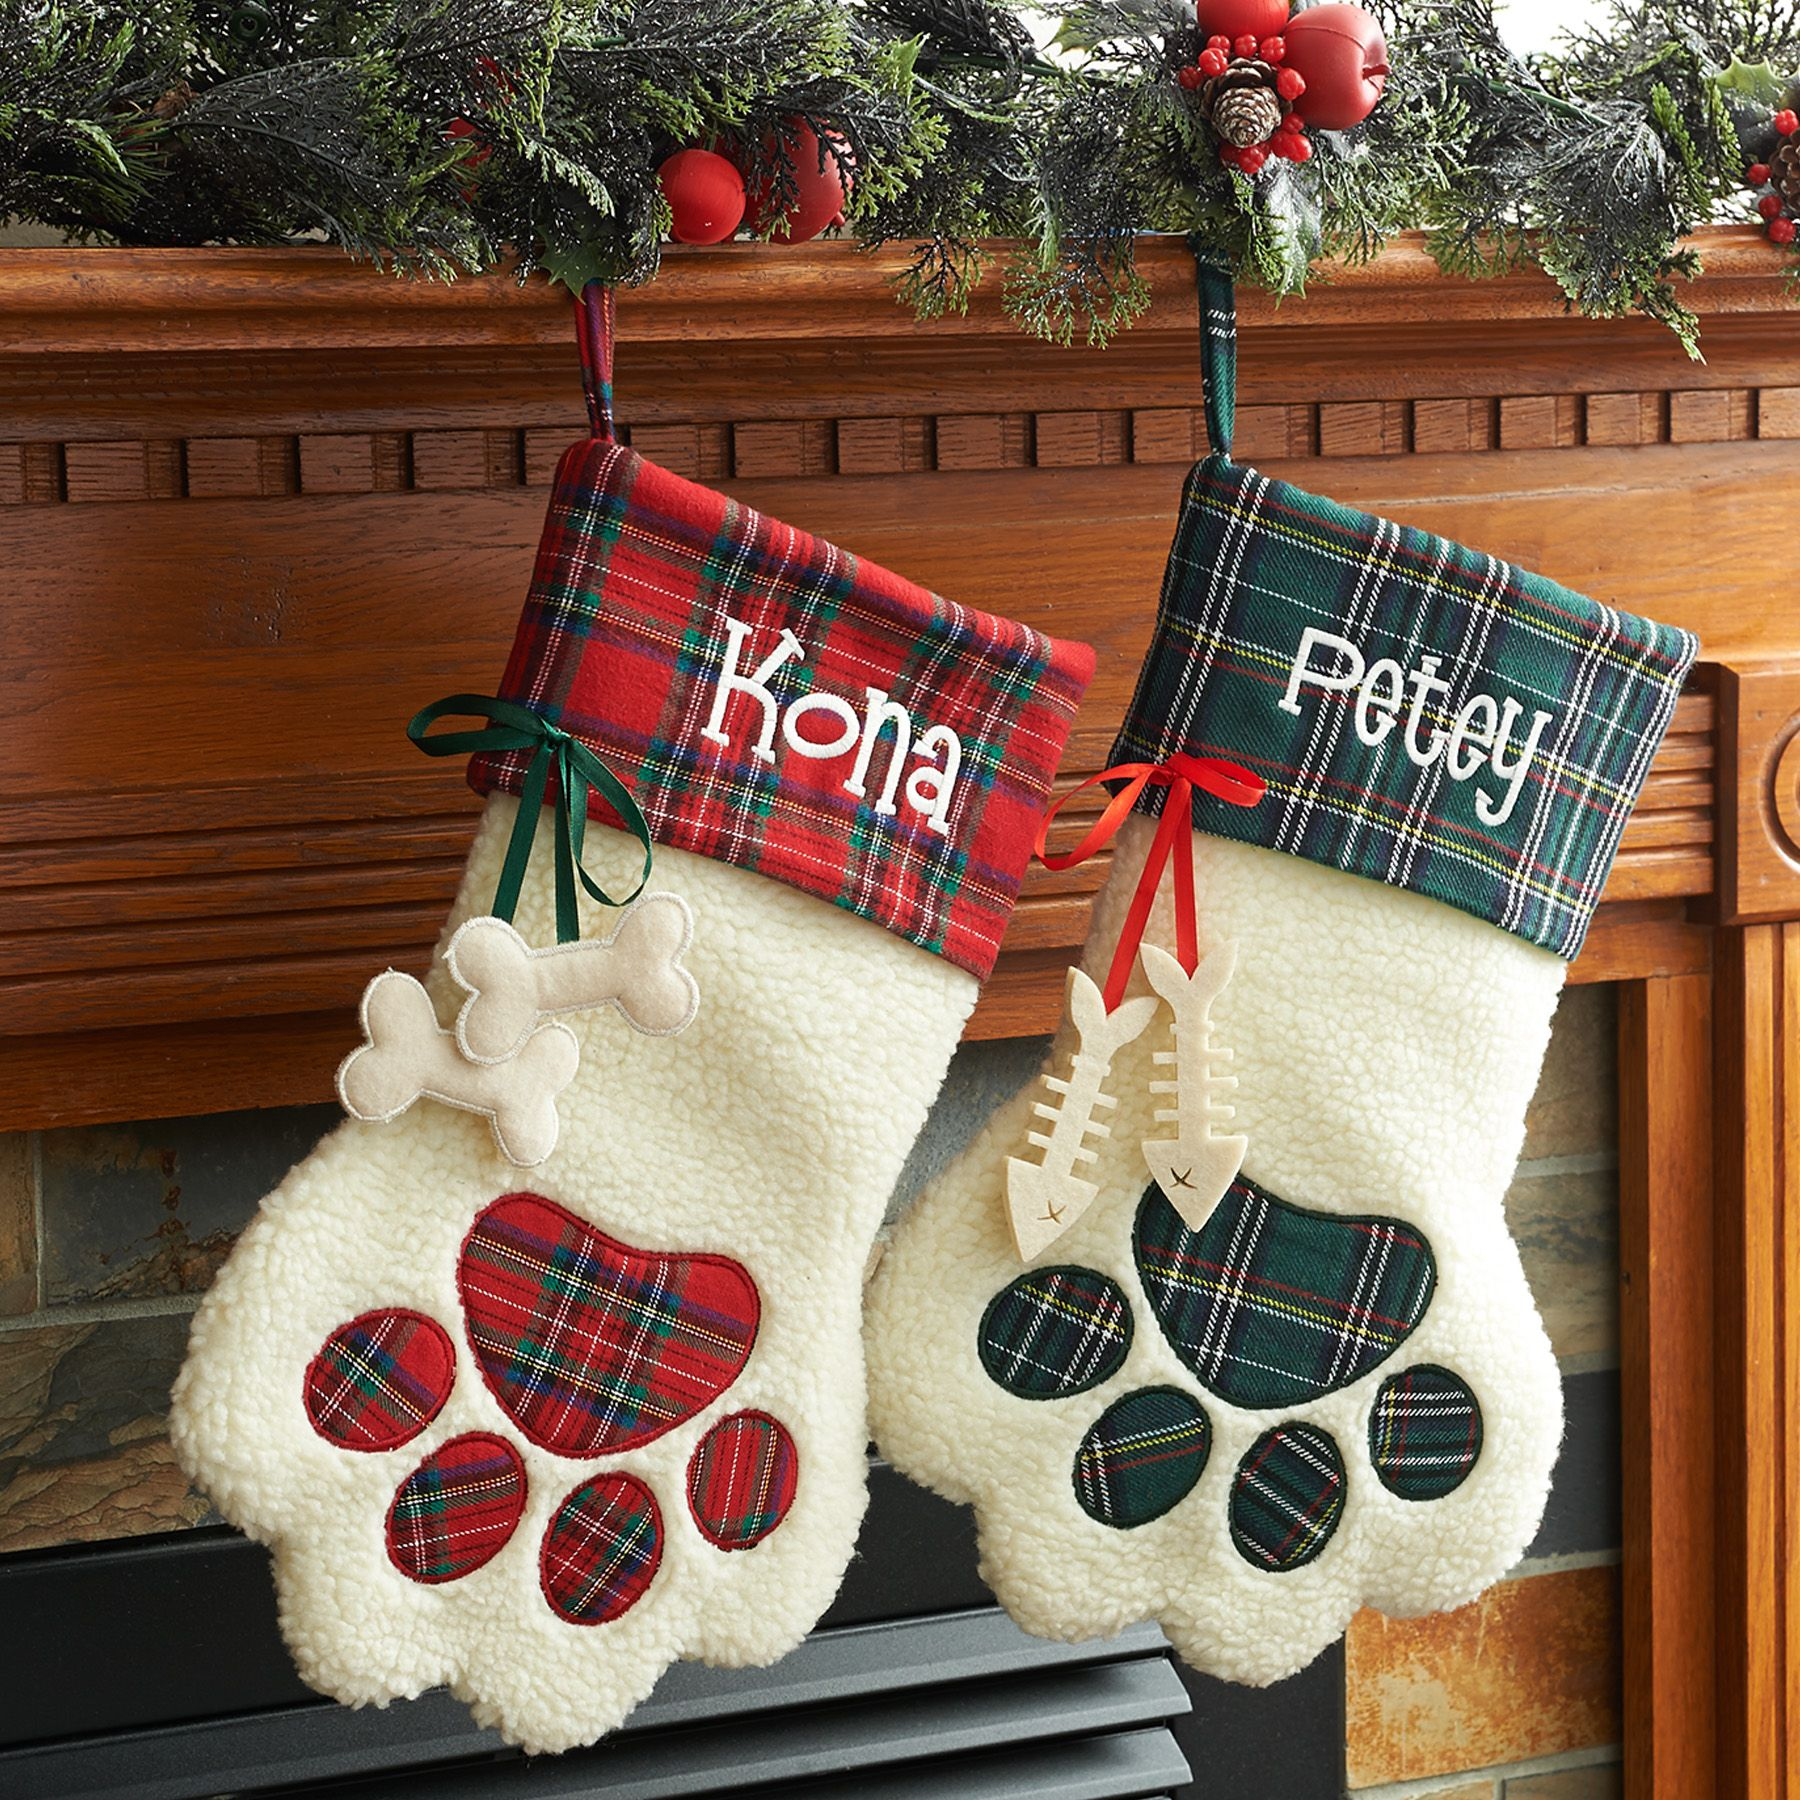 Add some jingle to the hearth with this personalized